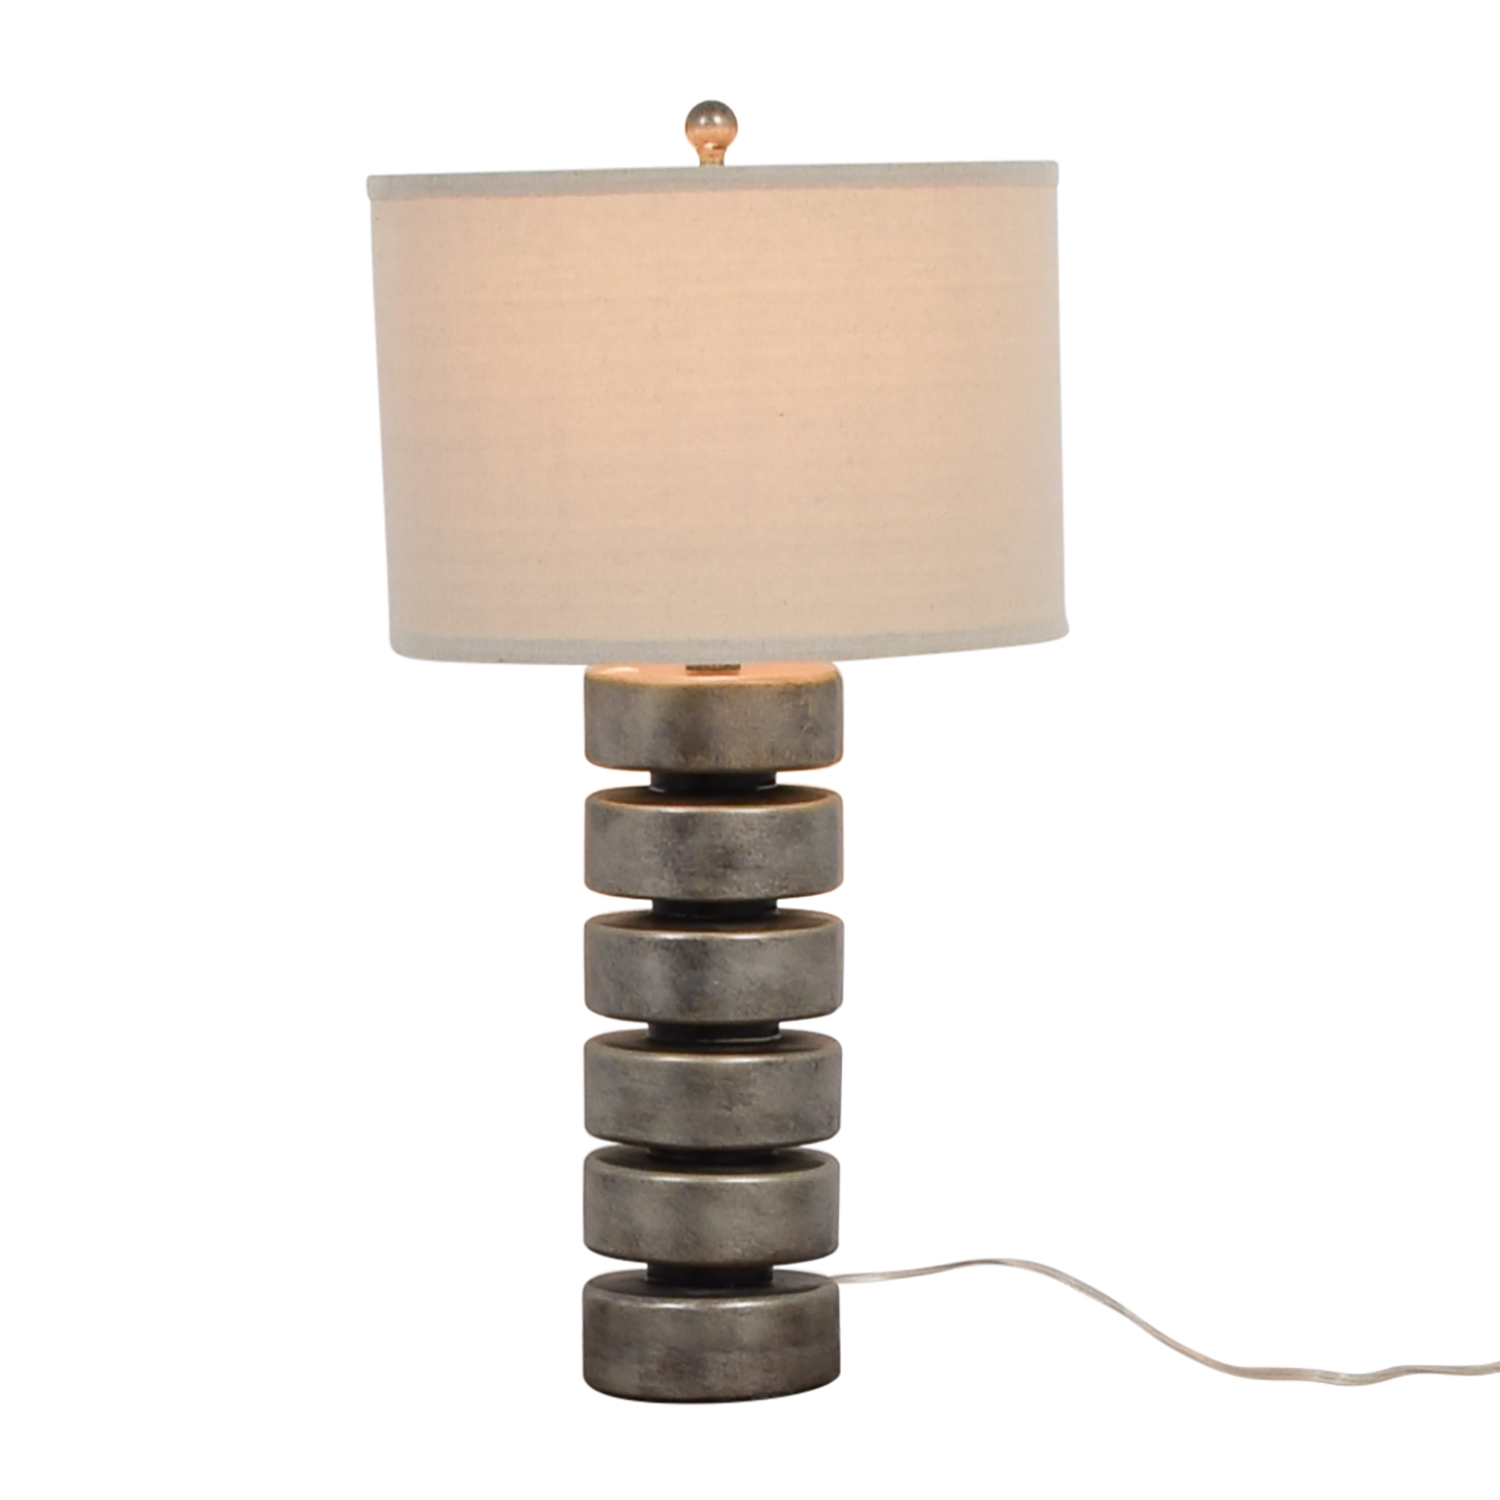 buy Silver and White Metal Table Lamp Decor